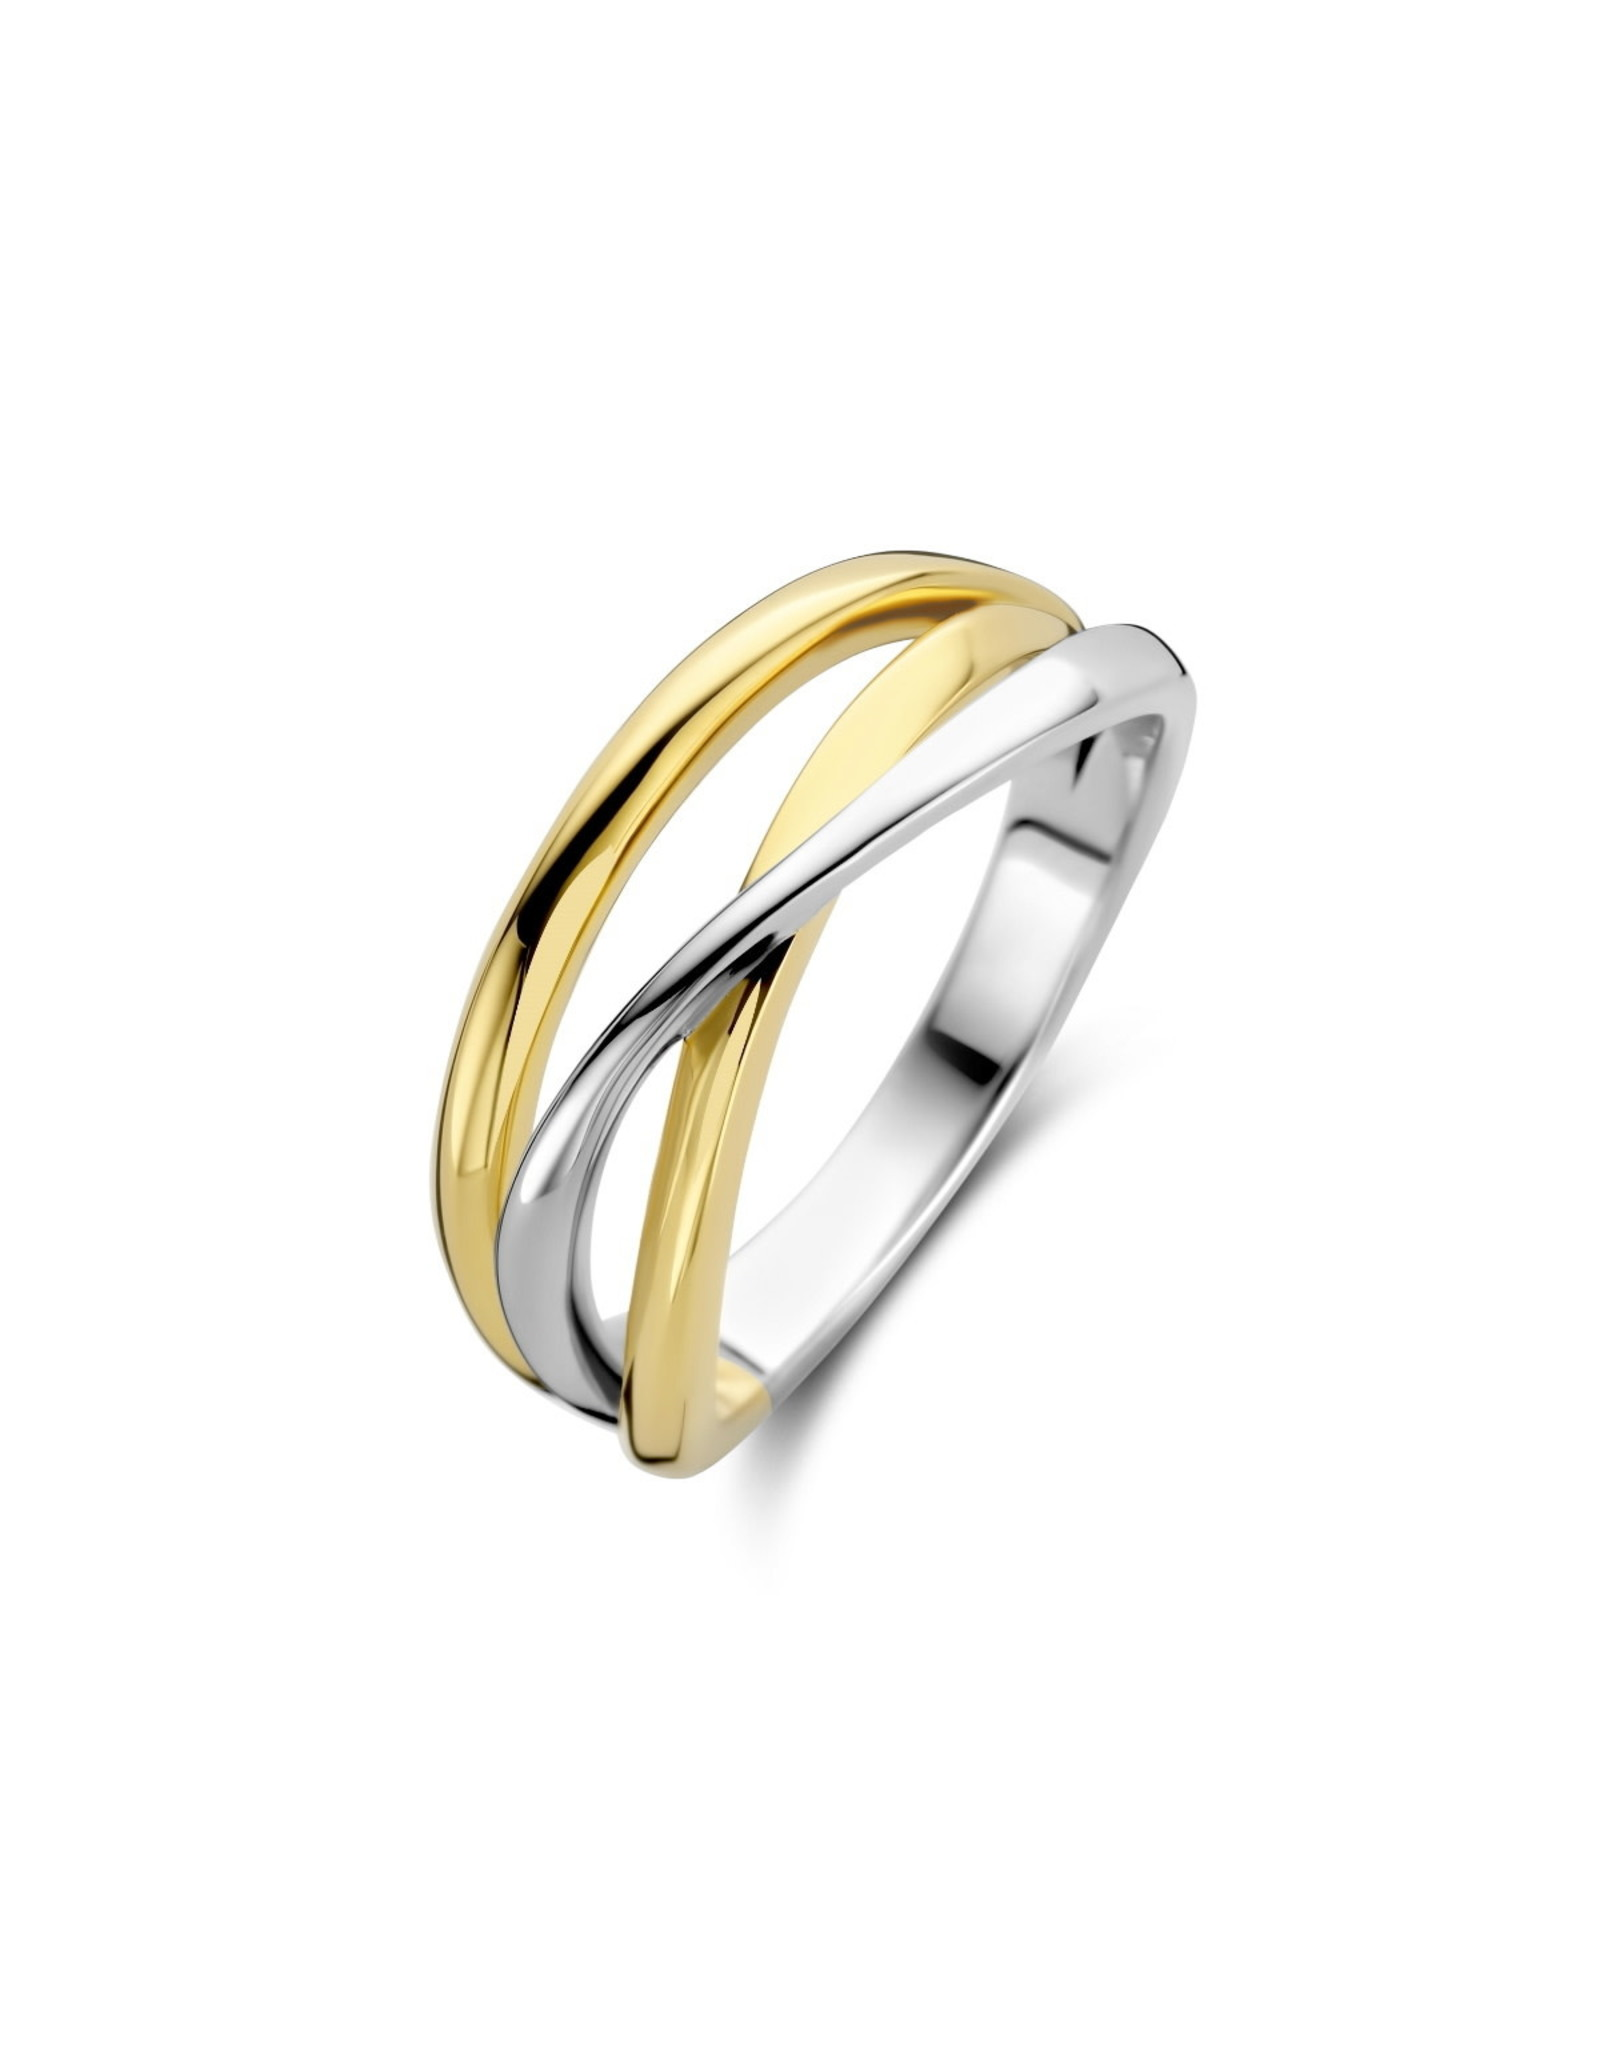 Ring Naiomy Moments B1N01 Bicolor Zilver/Zilver verguld